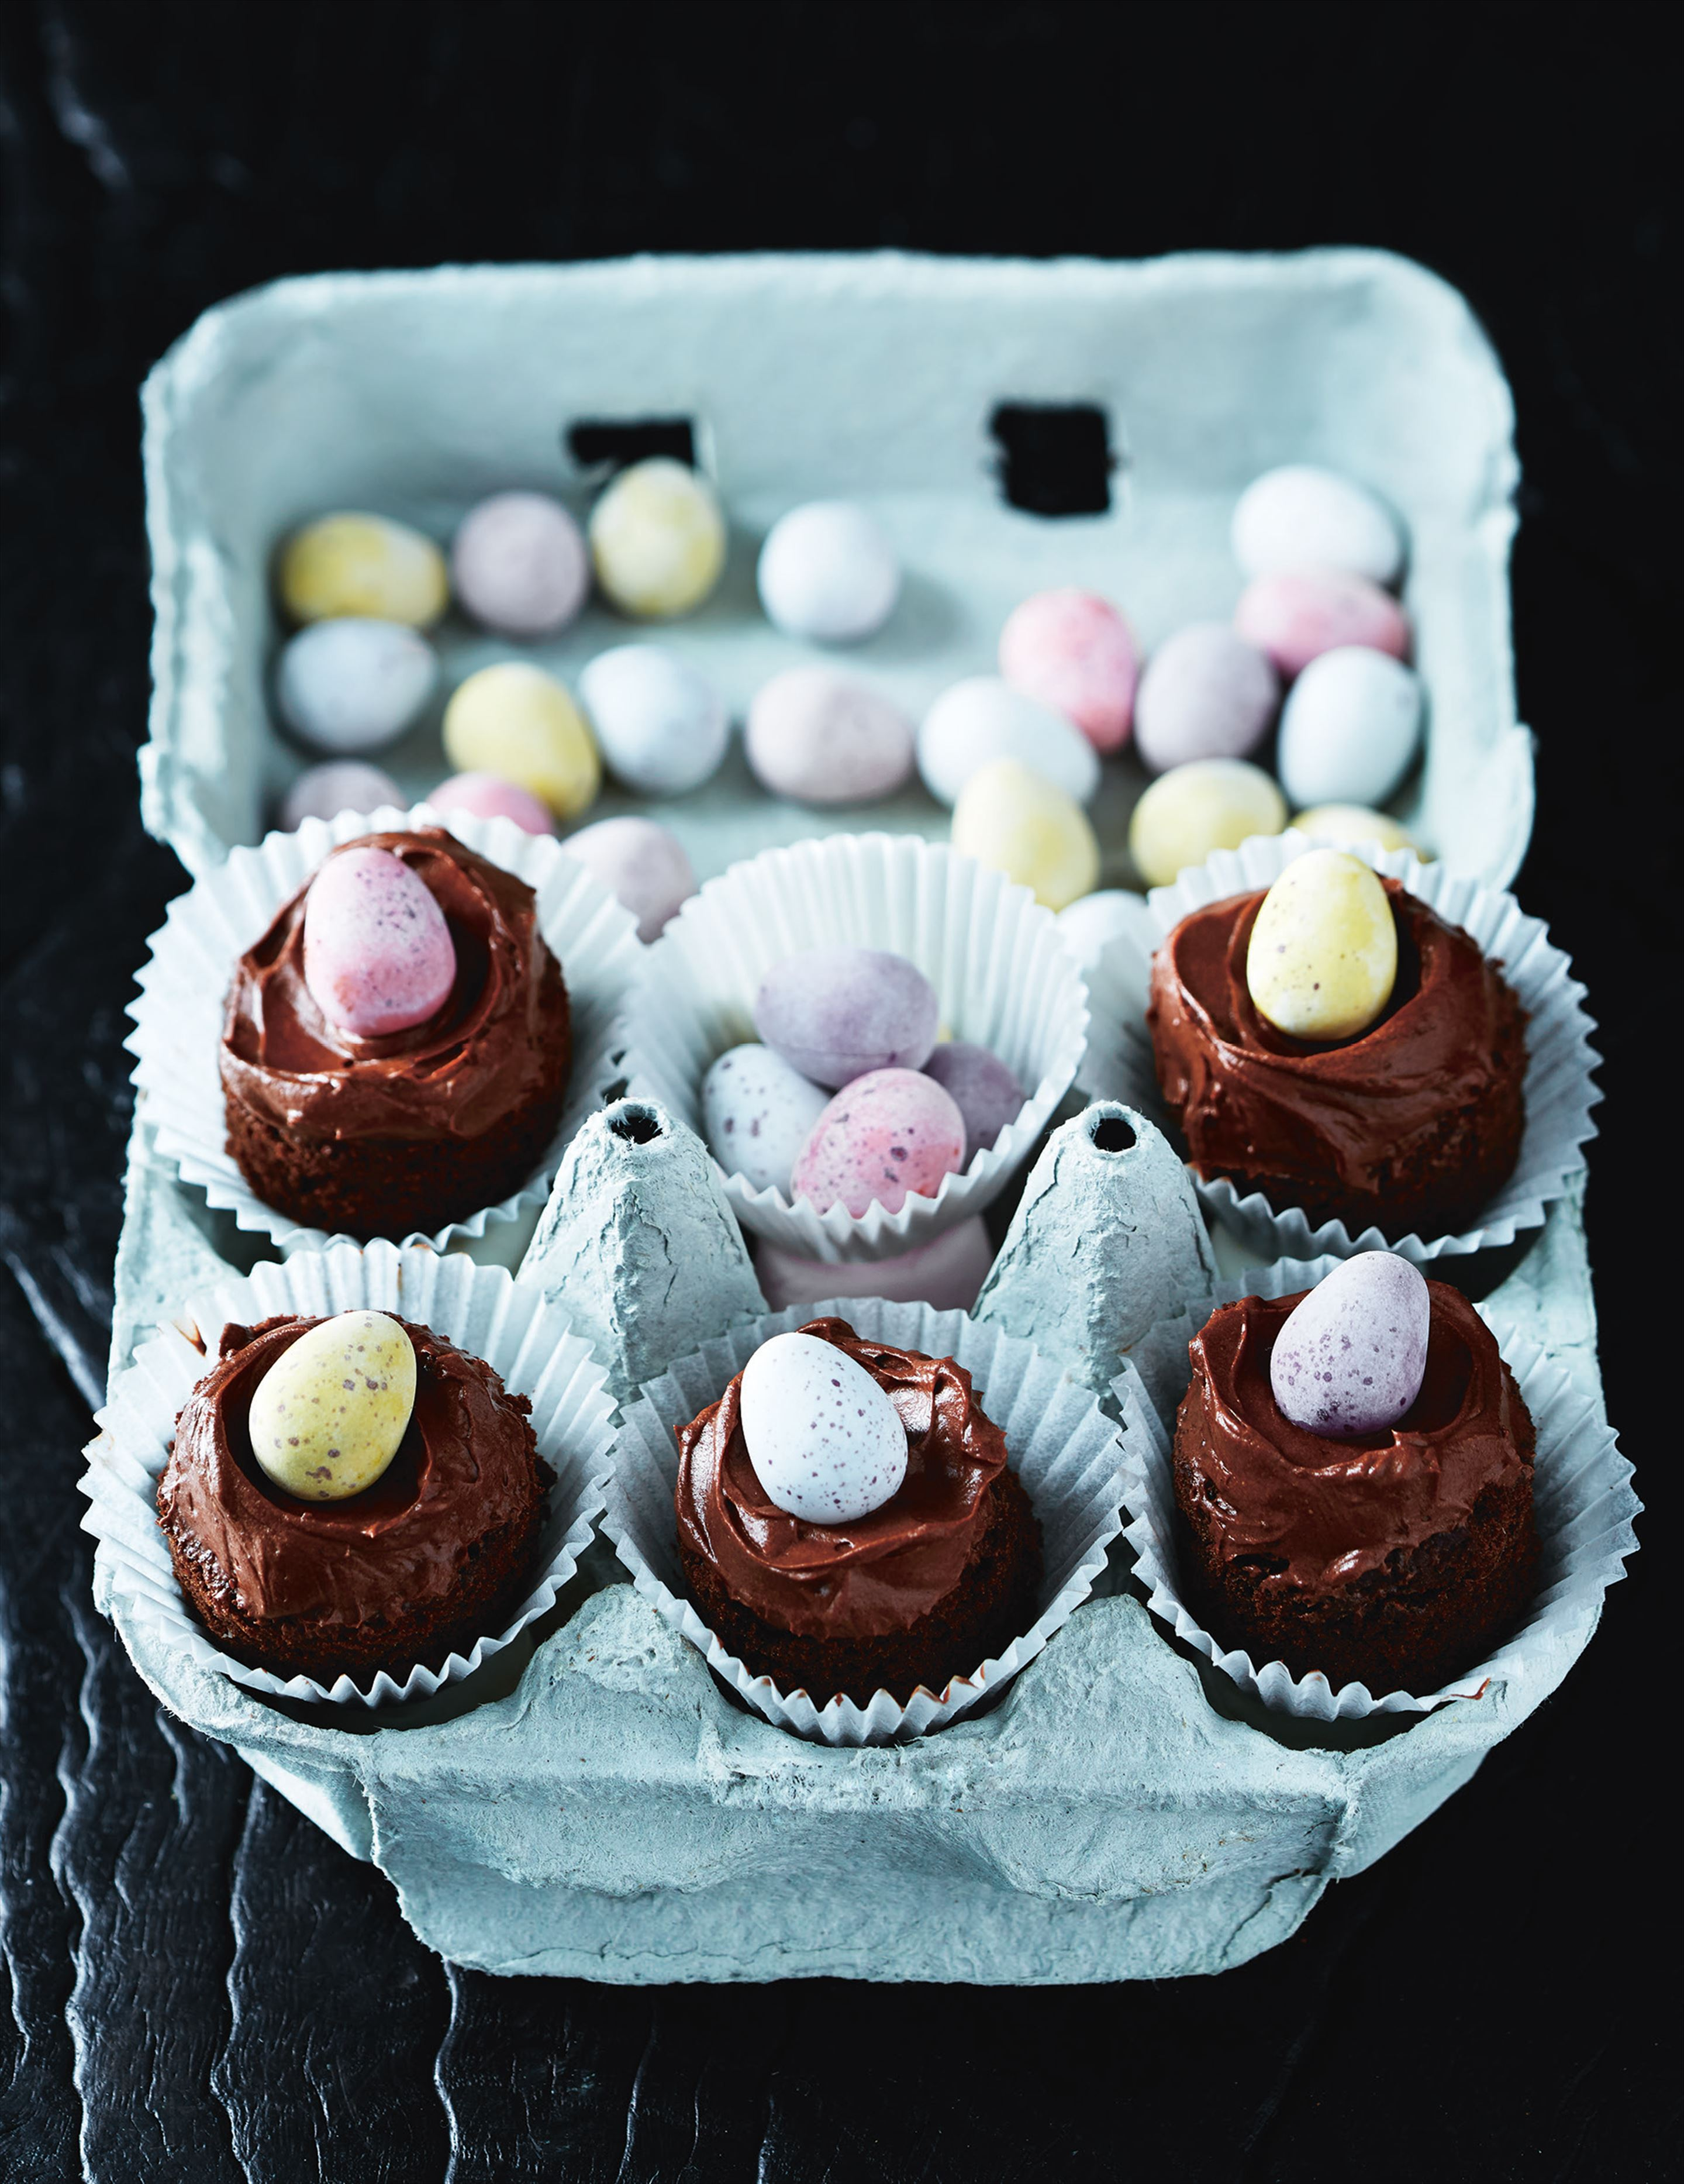 Chocolate Easter-egg cakes